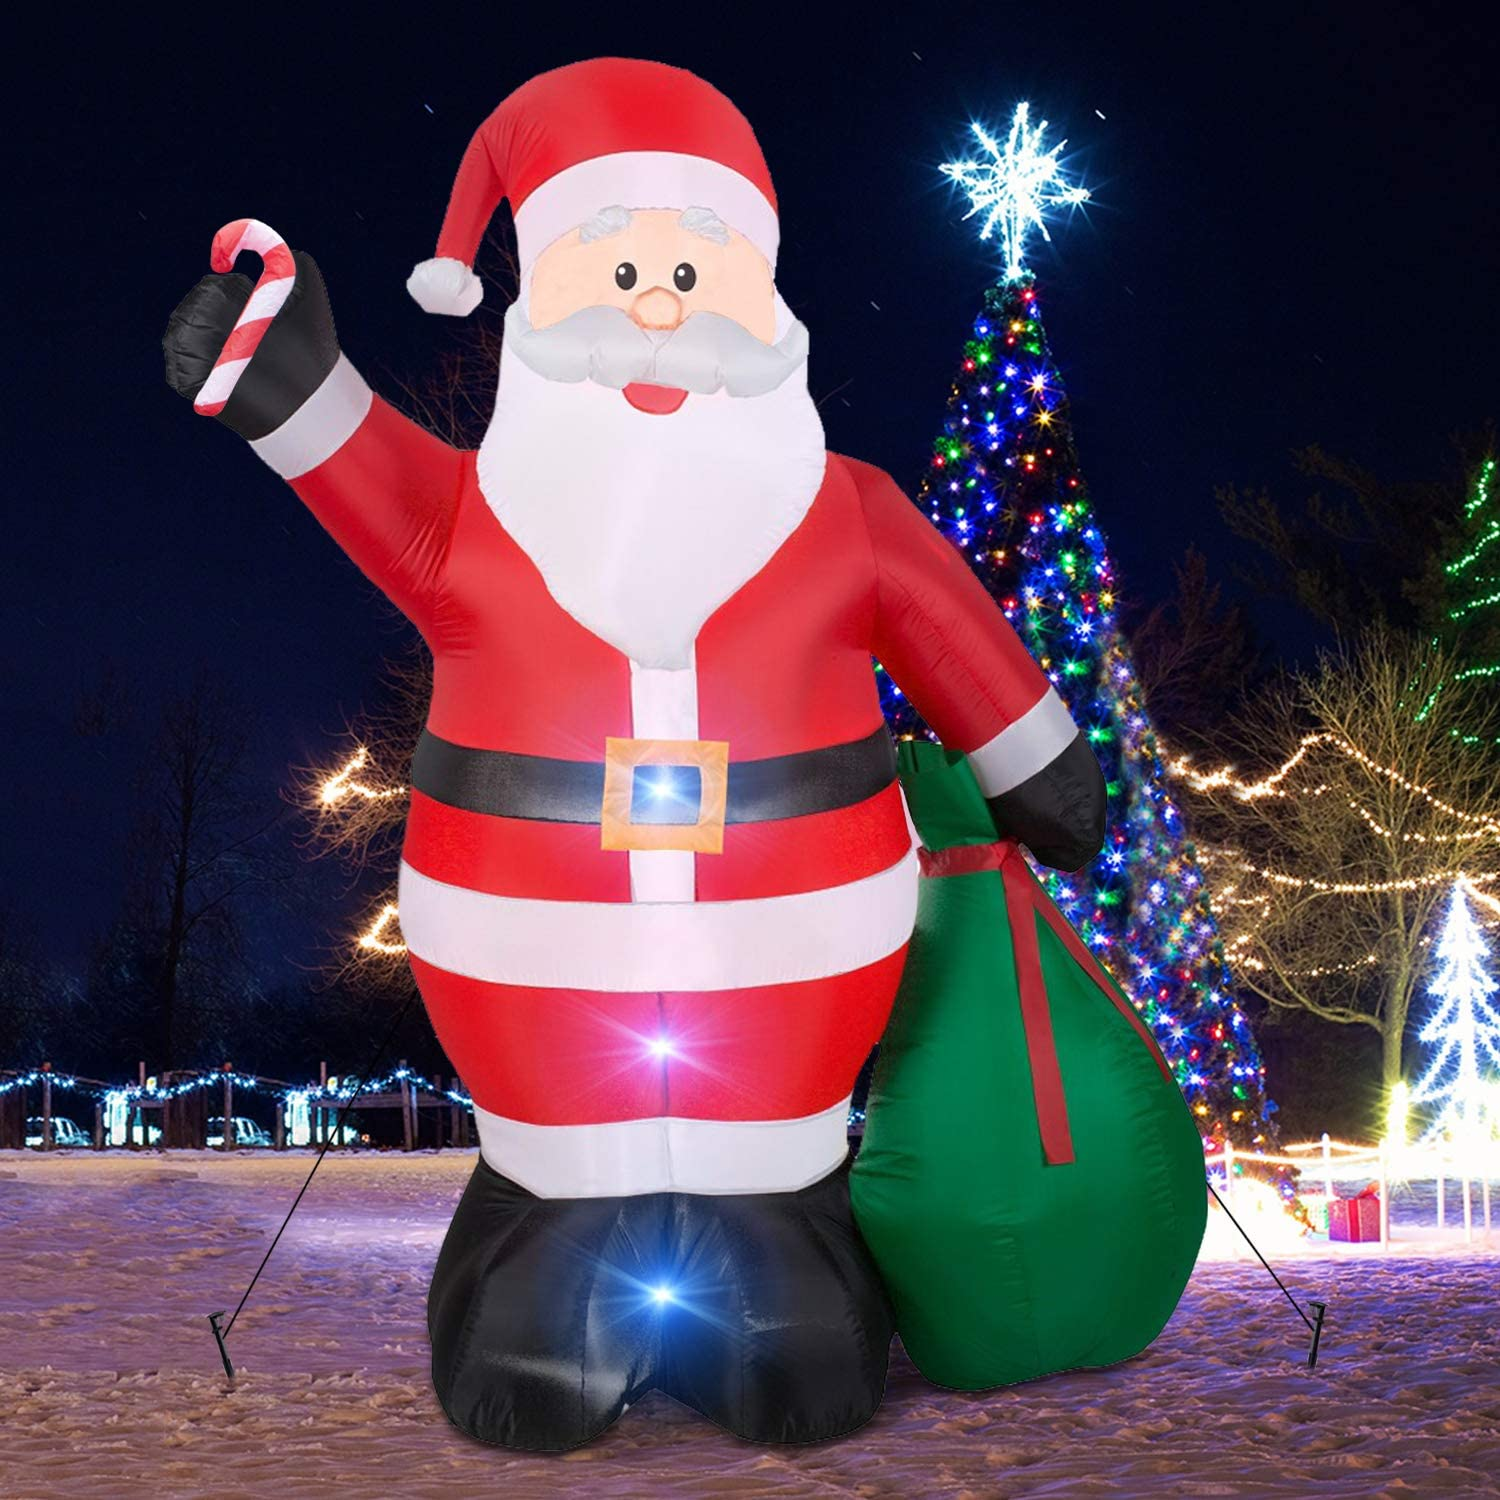 Christmas Inflatables Giant 12 Foot with Santa Ranking TOP16 Claus Sale price Inflatable